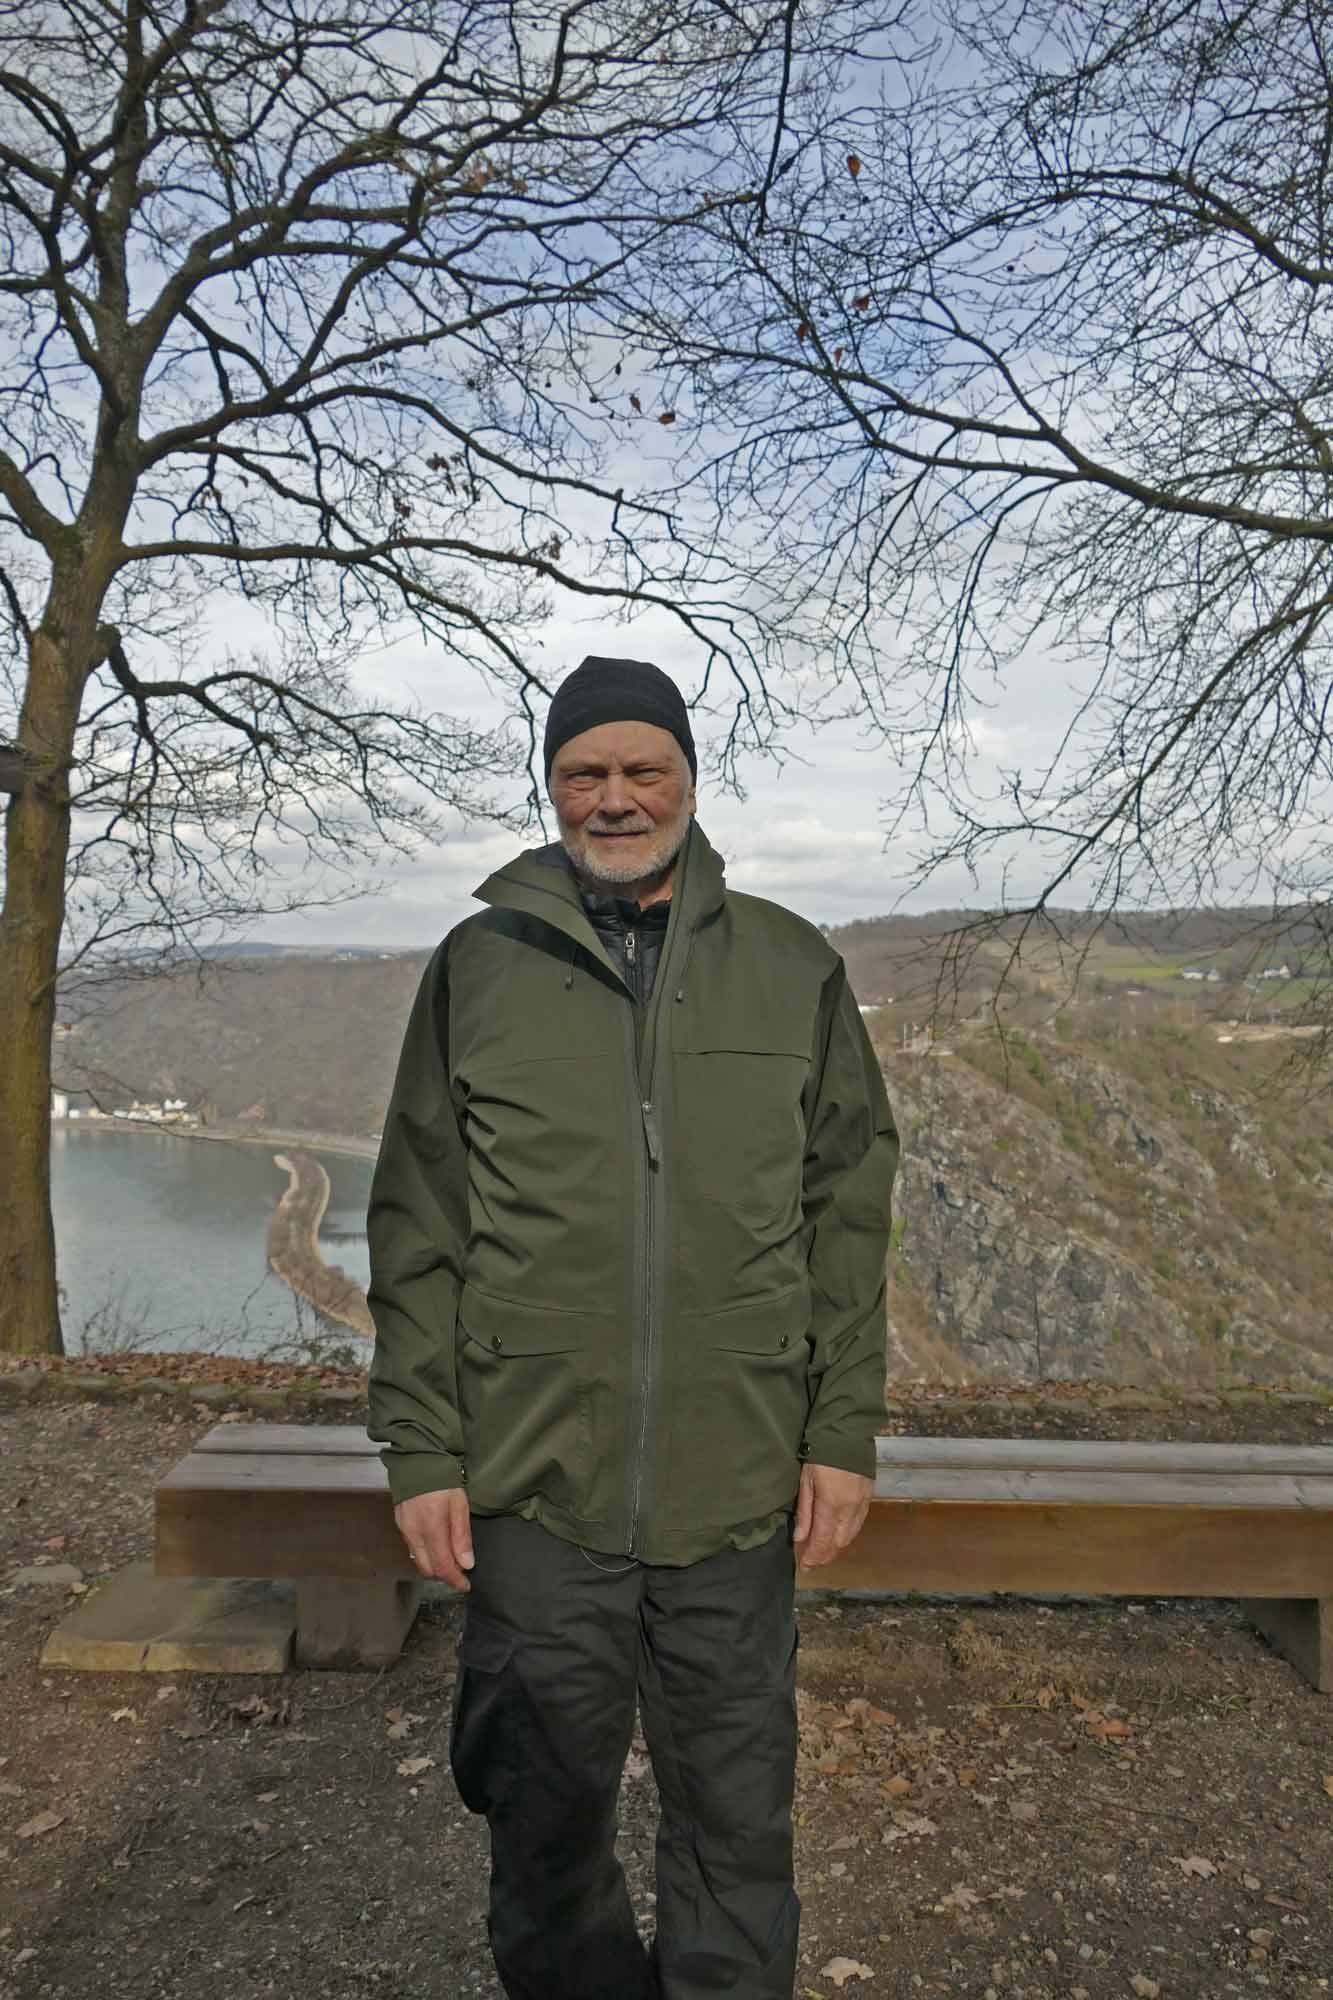 Haglöfs Eco Proof Jacket © U. Poller/ W. Todt